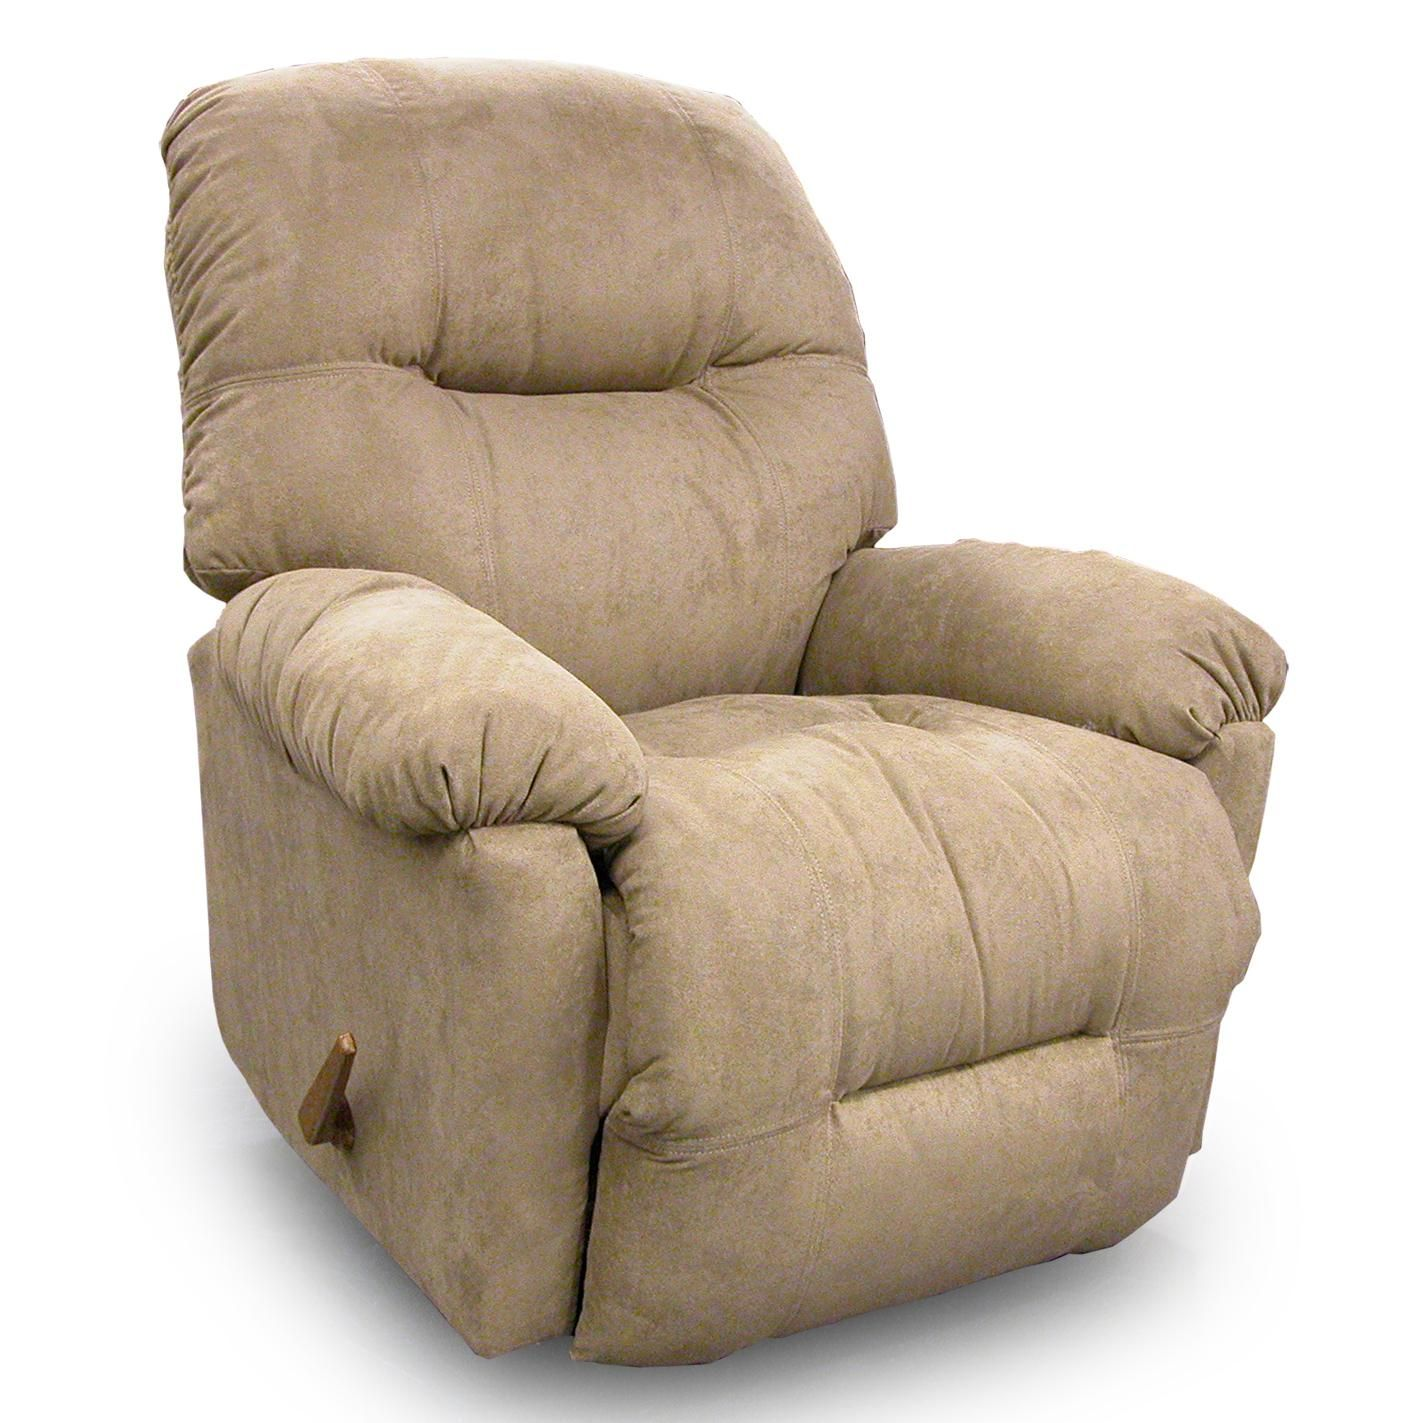 High Quality Recliners   Petite Wynette Power Rocking Reclining Chair By Best Home  Furnishings   Miskelly Furniture